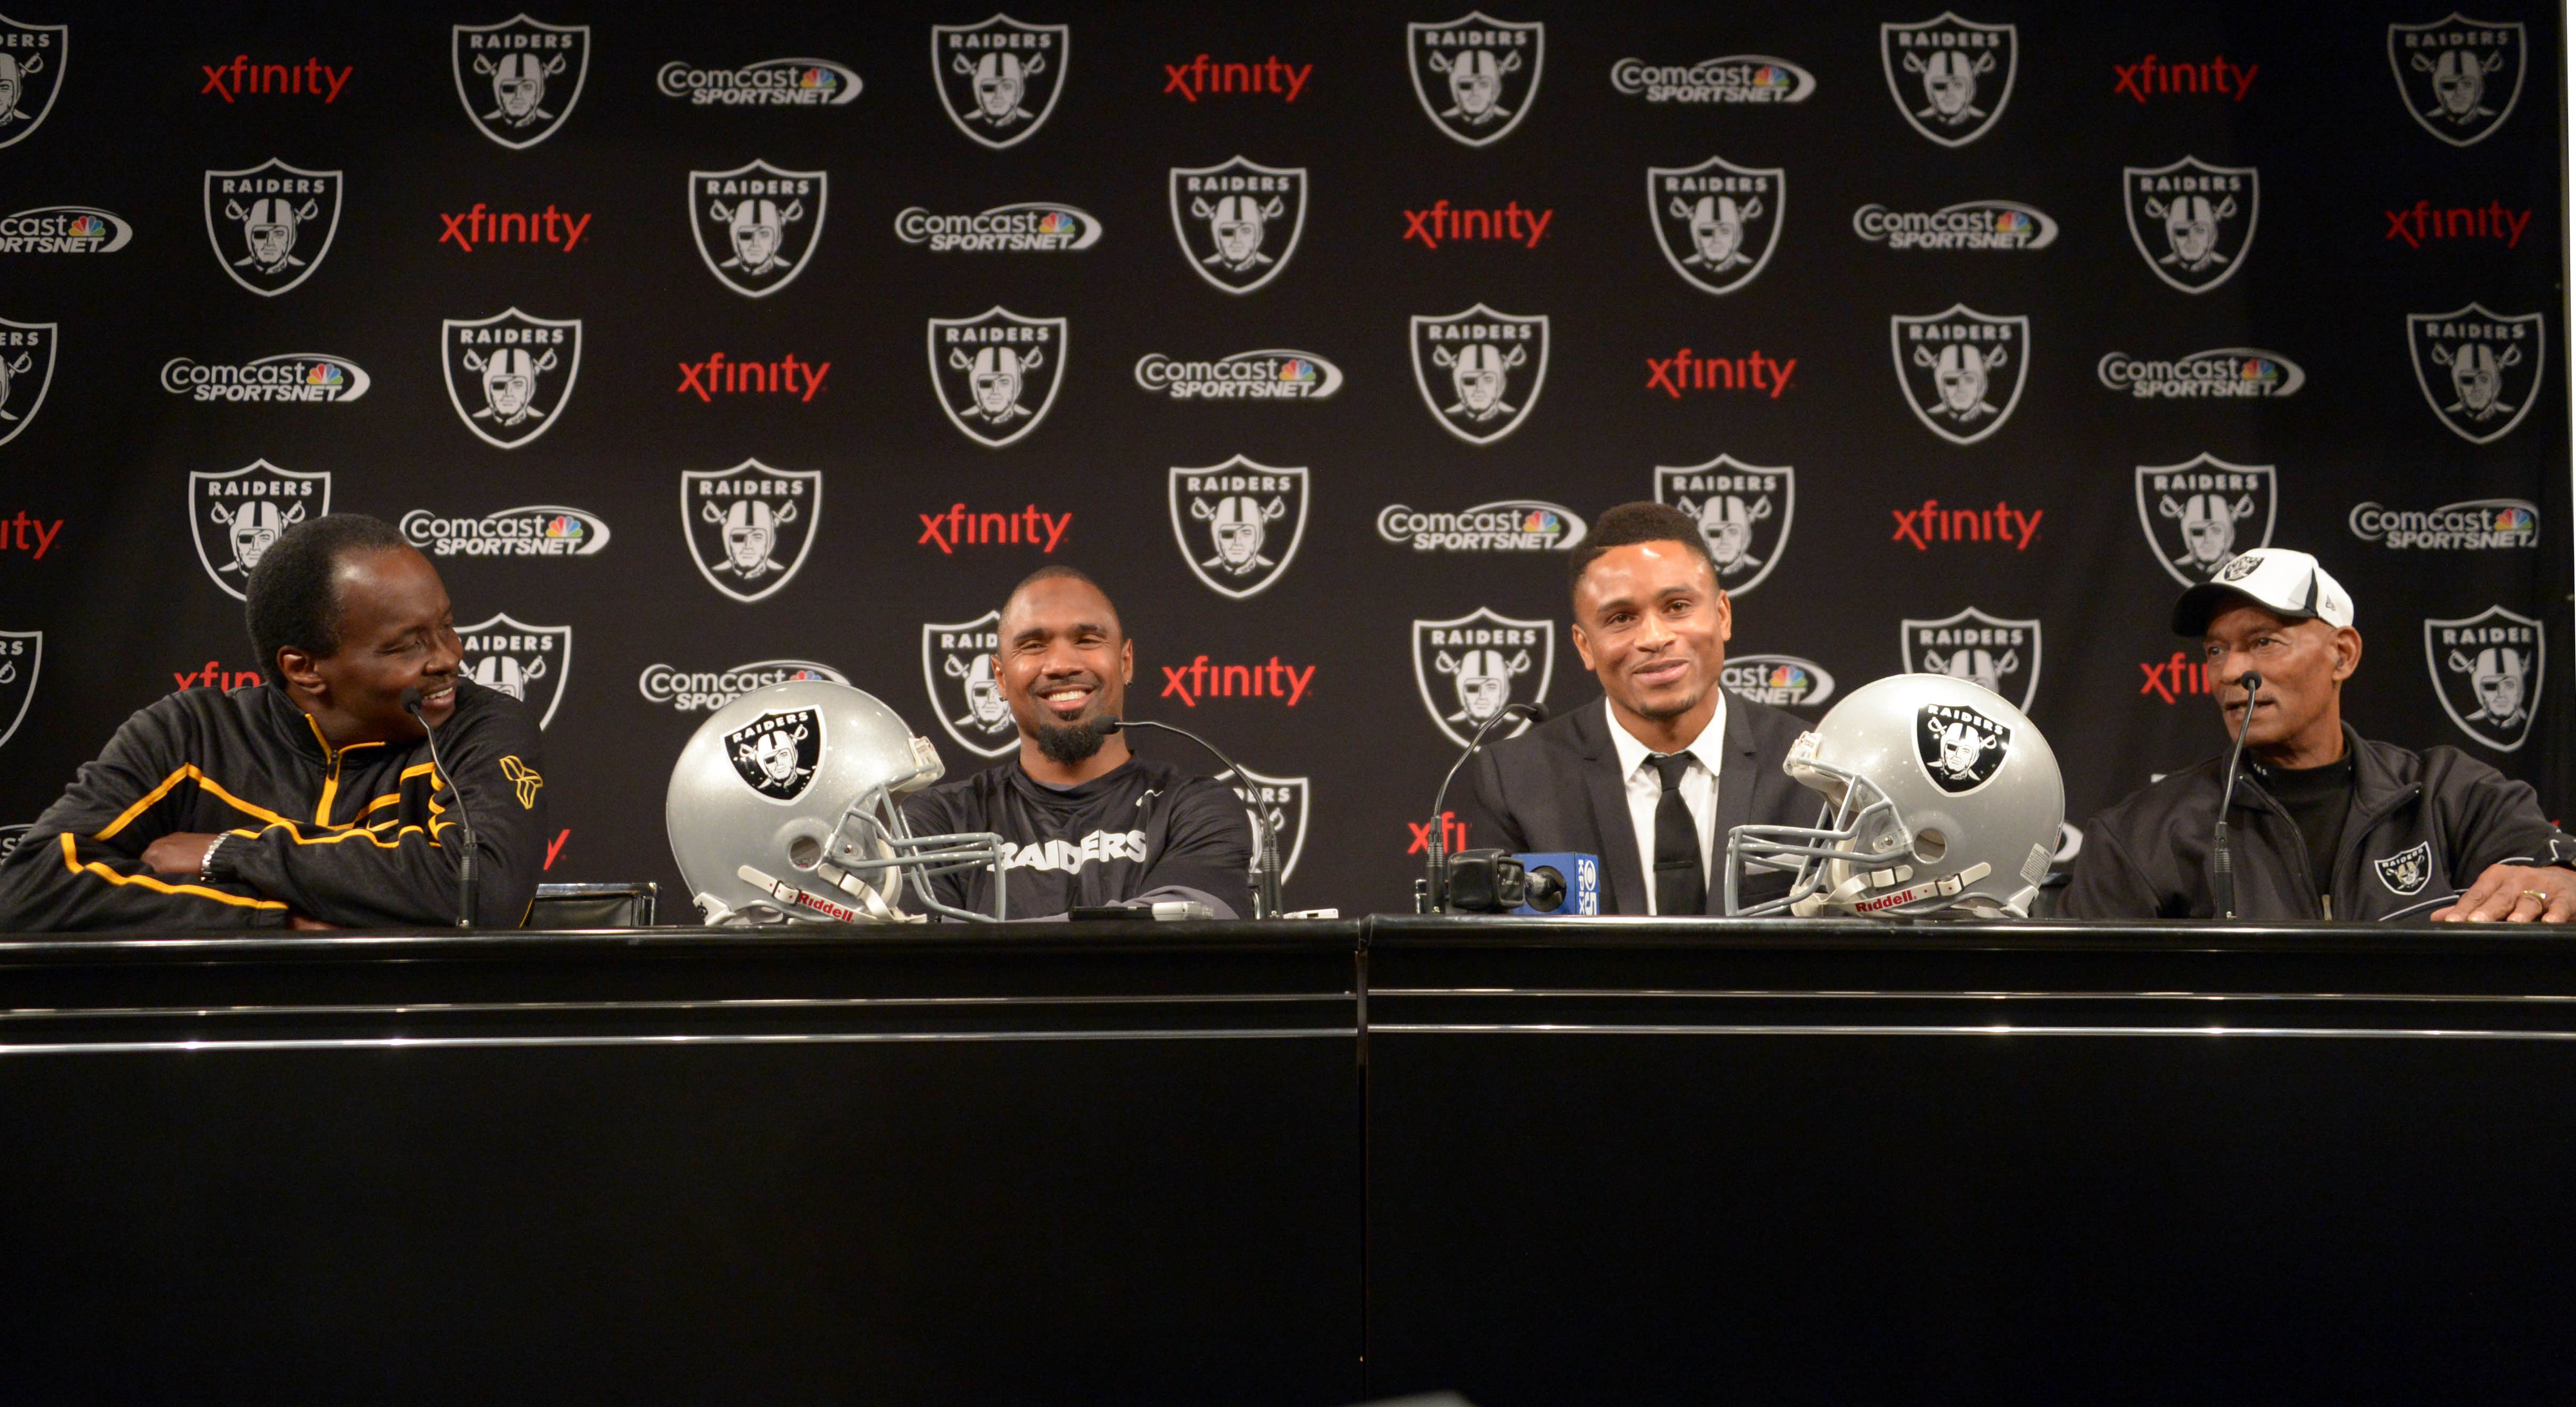 Left to right: Lester Hayes, Charles Woodson, Nnamdi Asomugha, Willie Brown